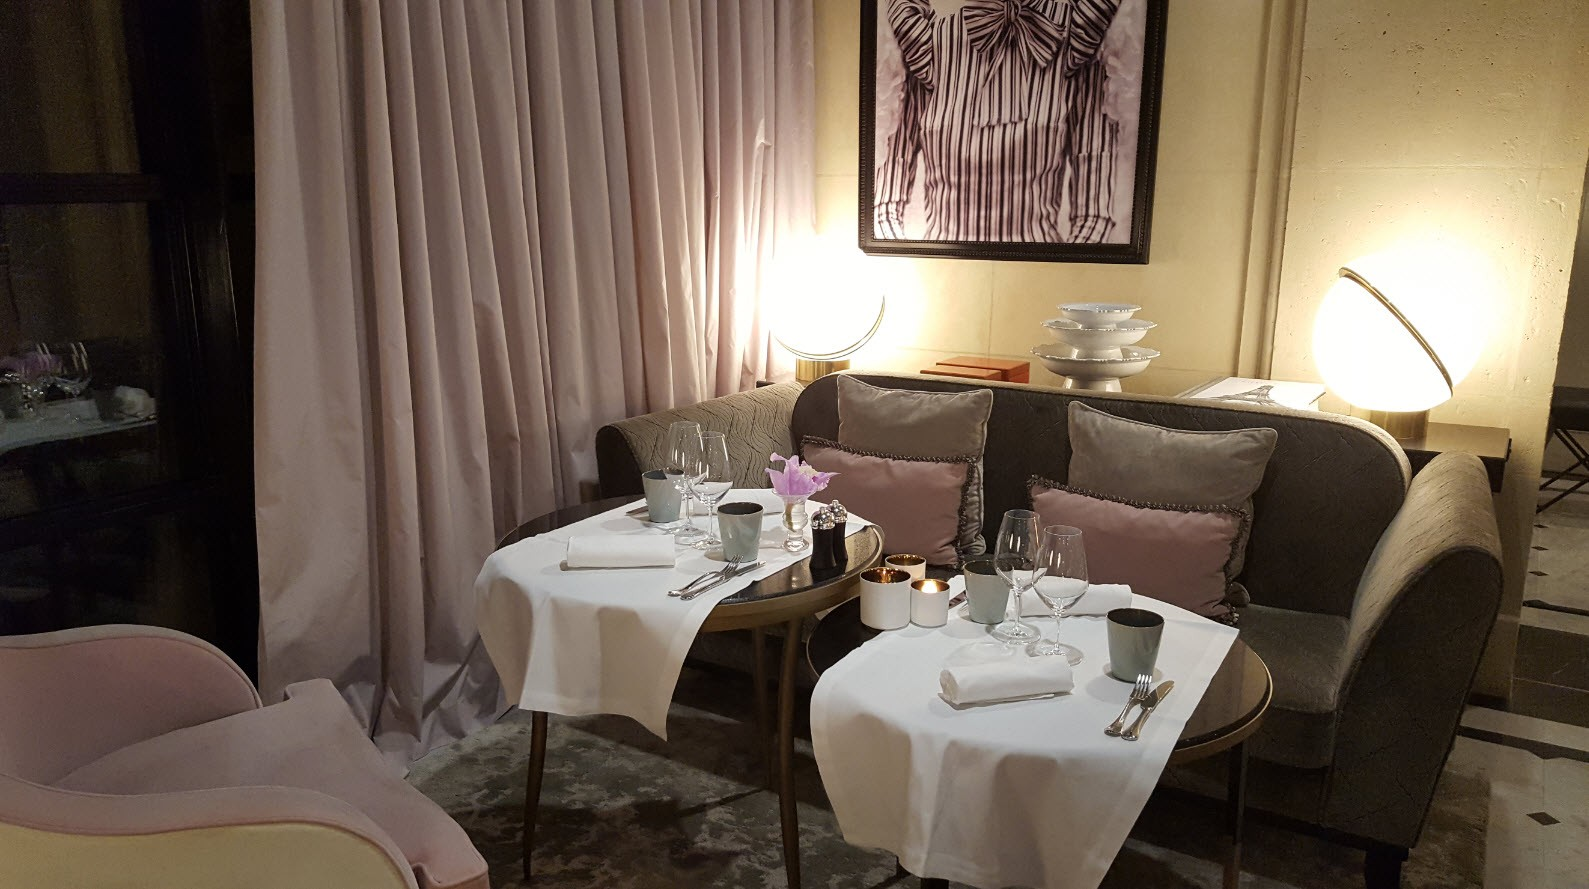 Restaurant Cleo Paris